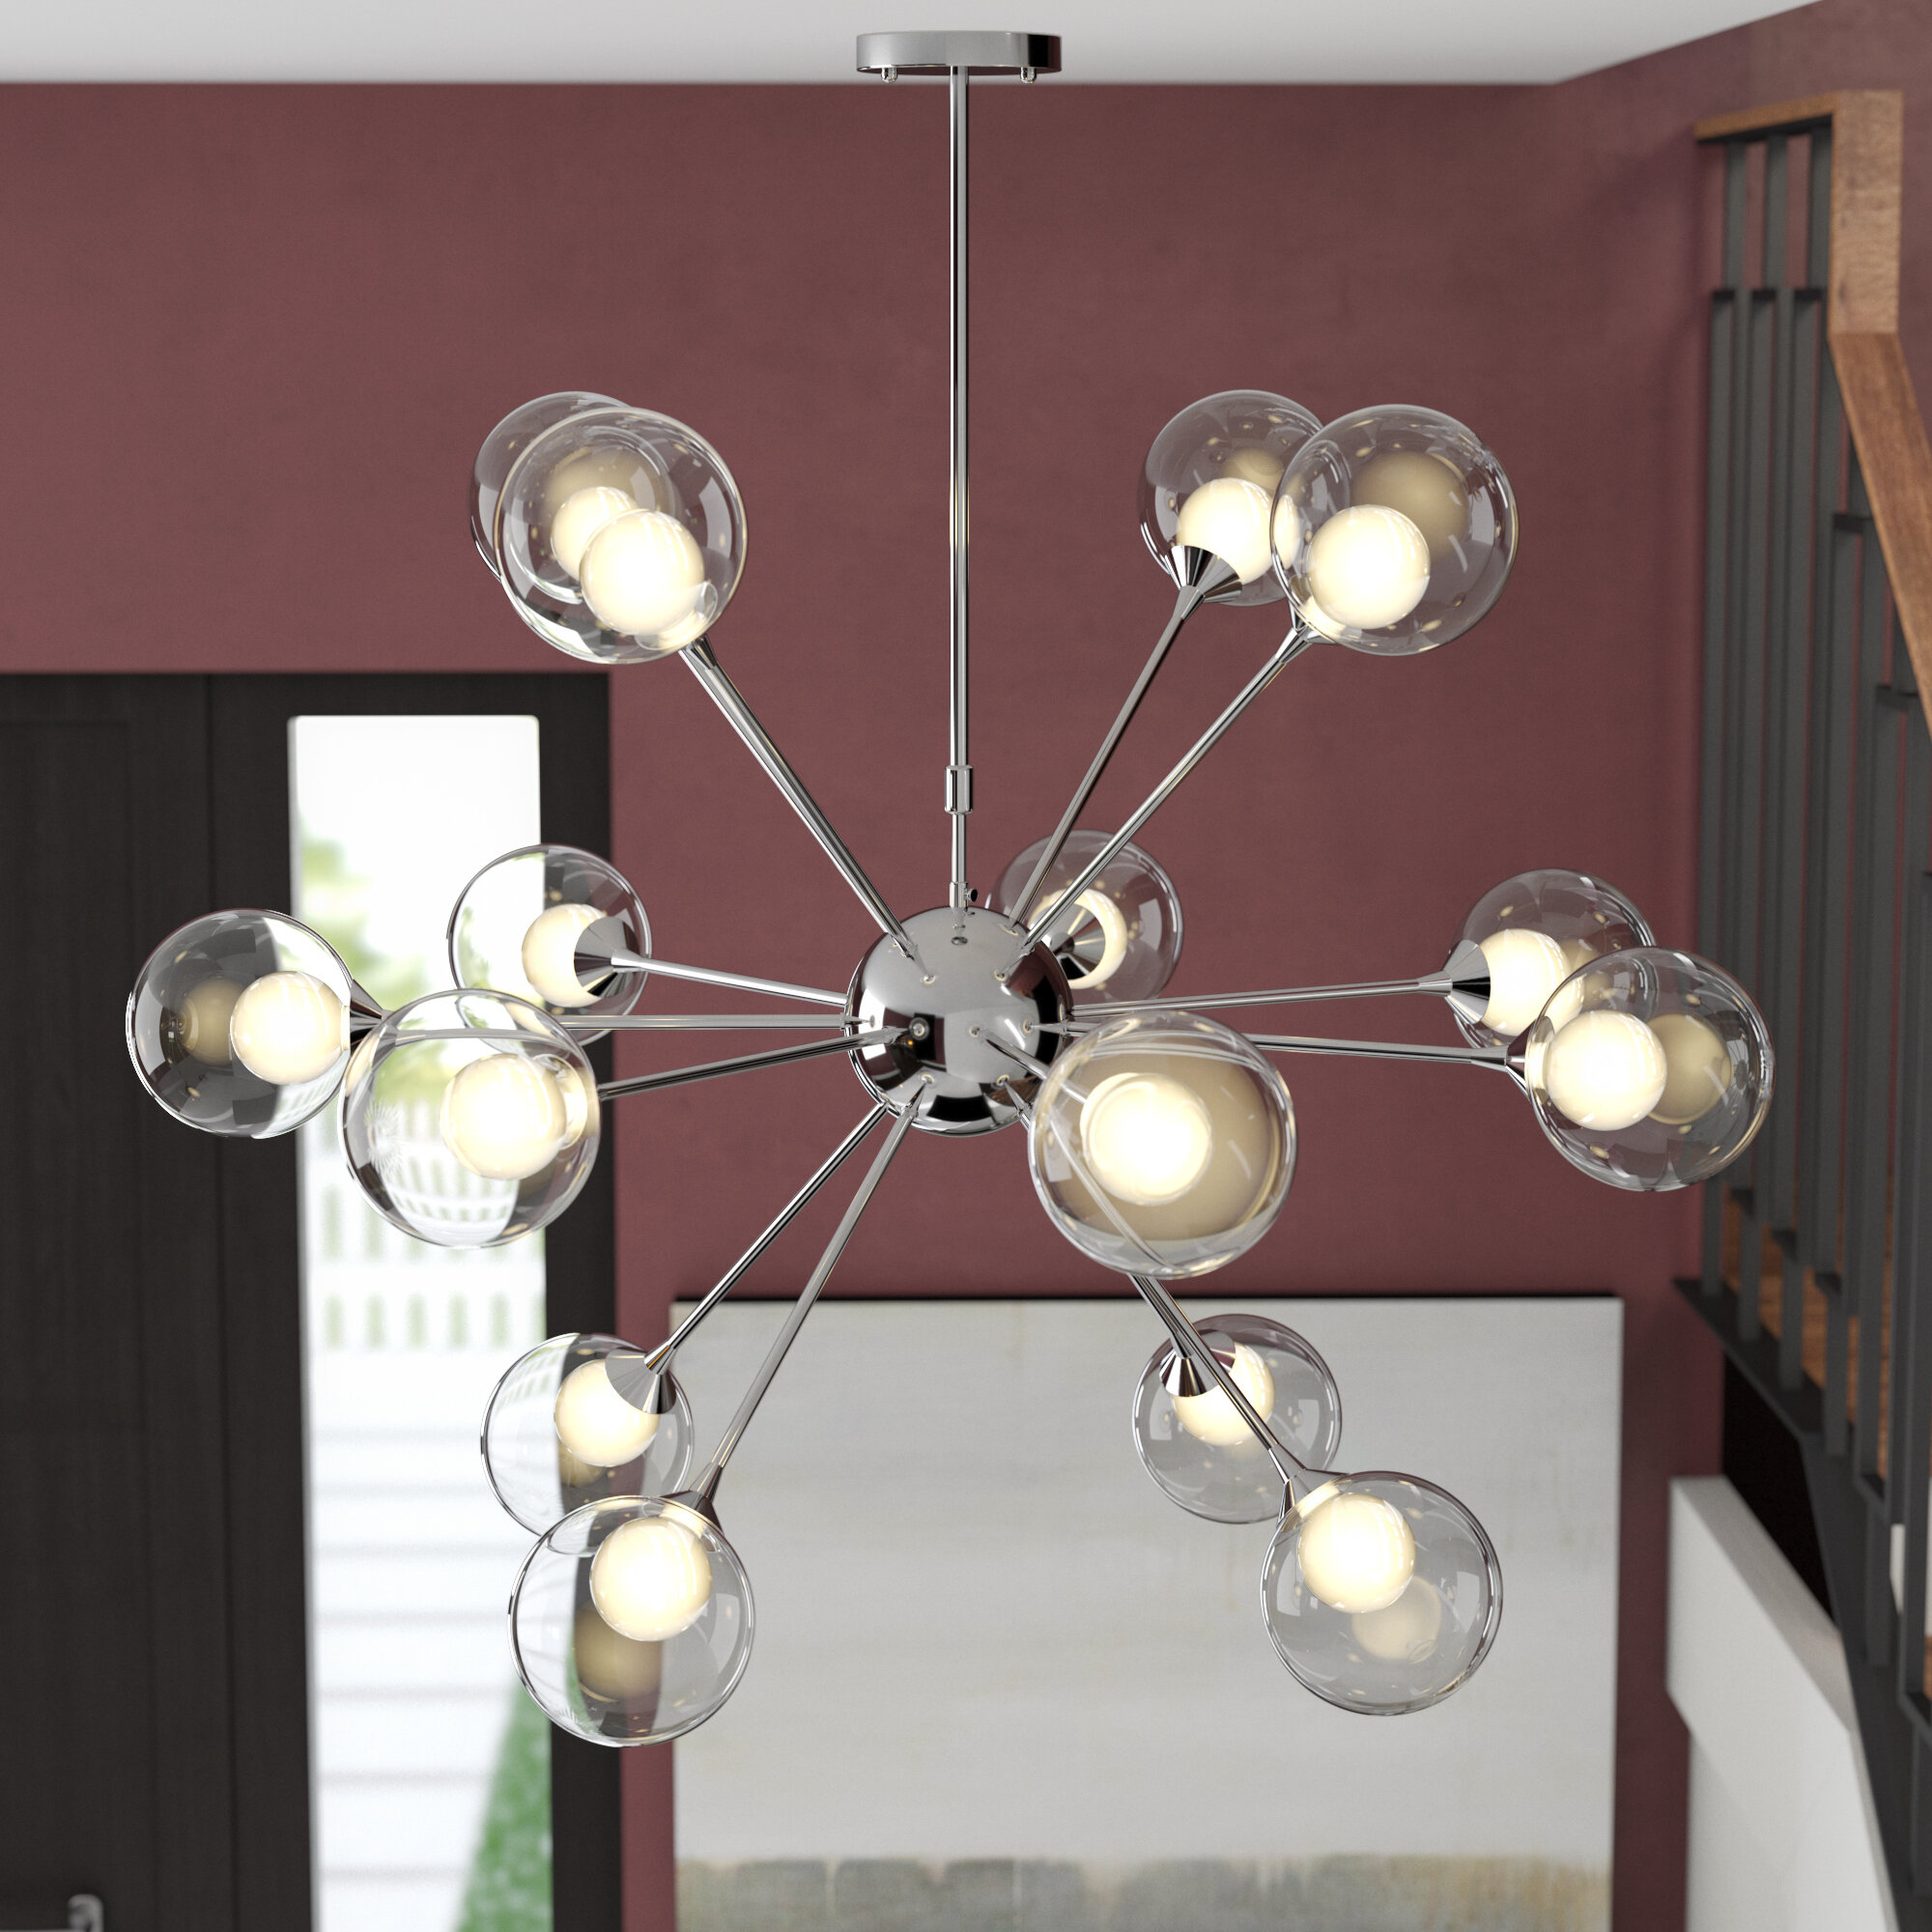 milk pdp glass lighting light osvaldo chandelier allmodern